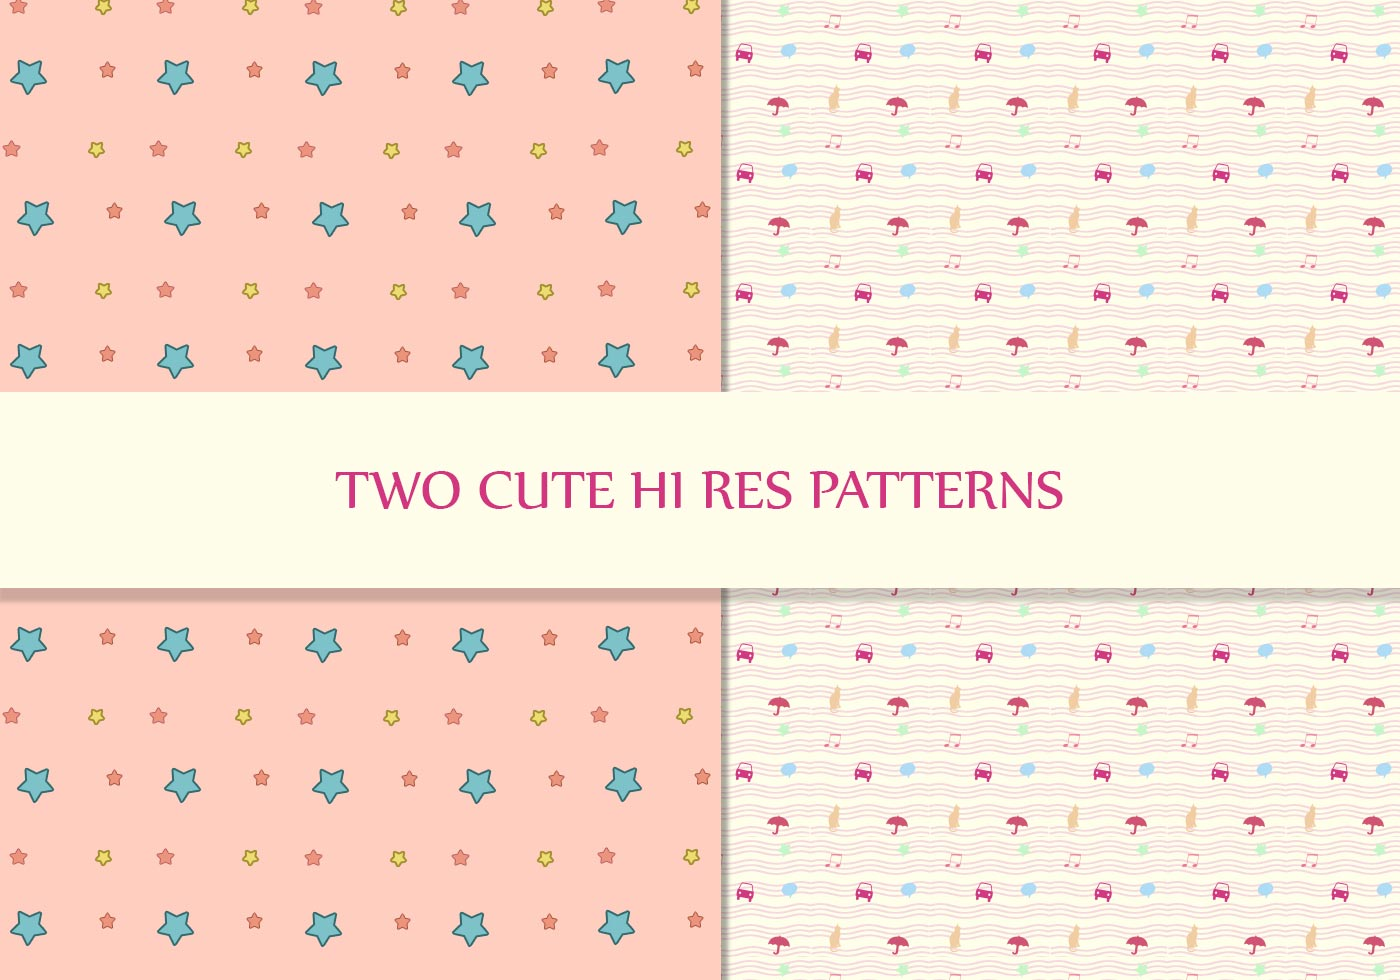 Baby Girl Pattern Wallpaper Cute Pattern Pack Free Photoshop Patterns At Brusheezy